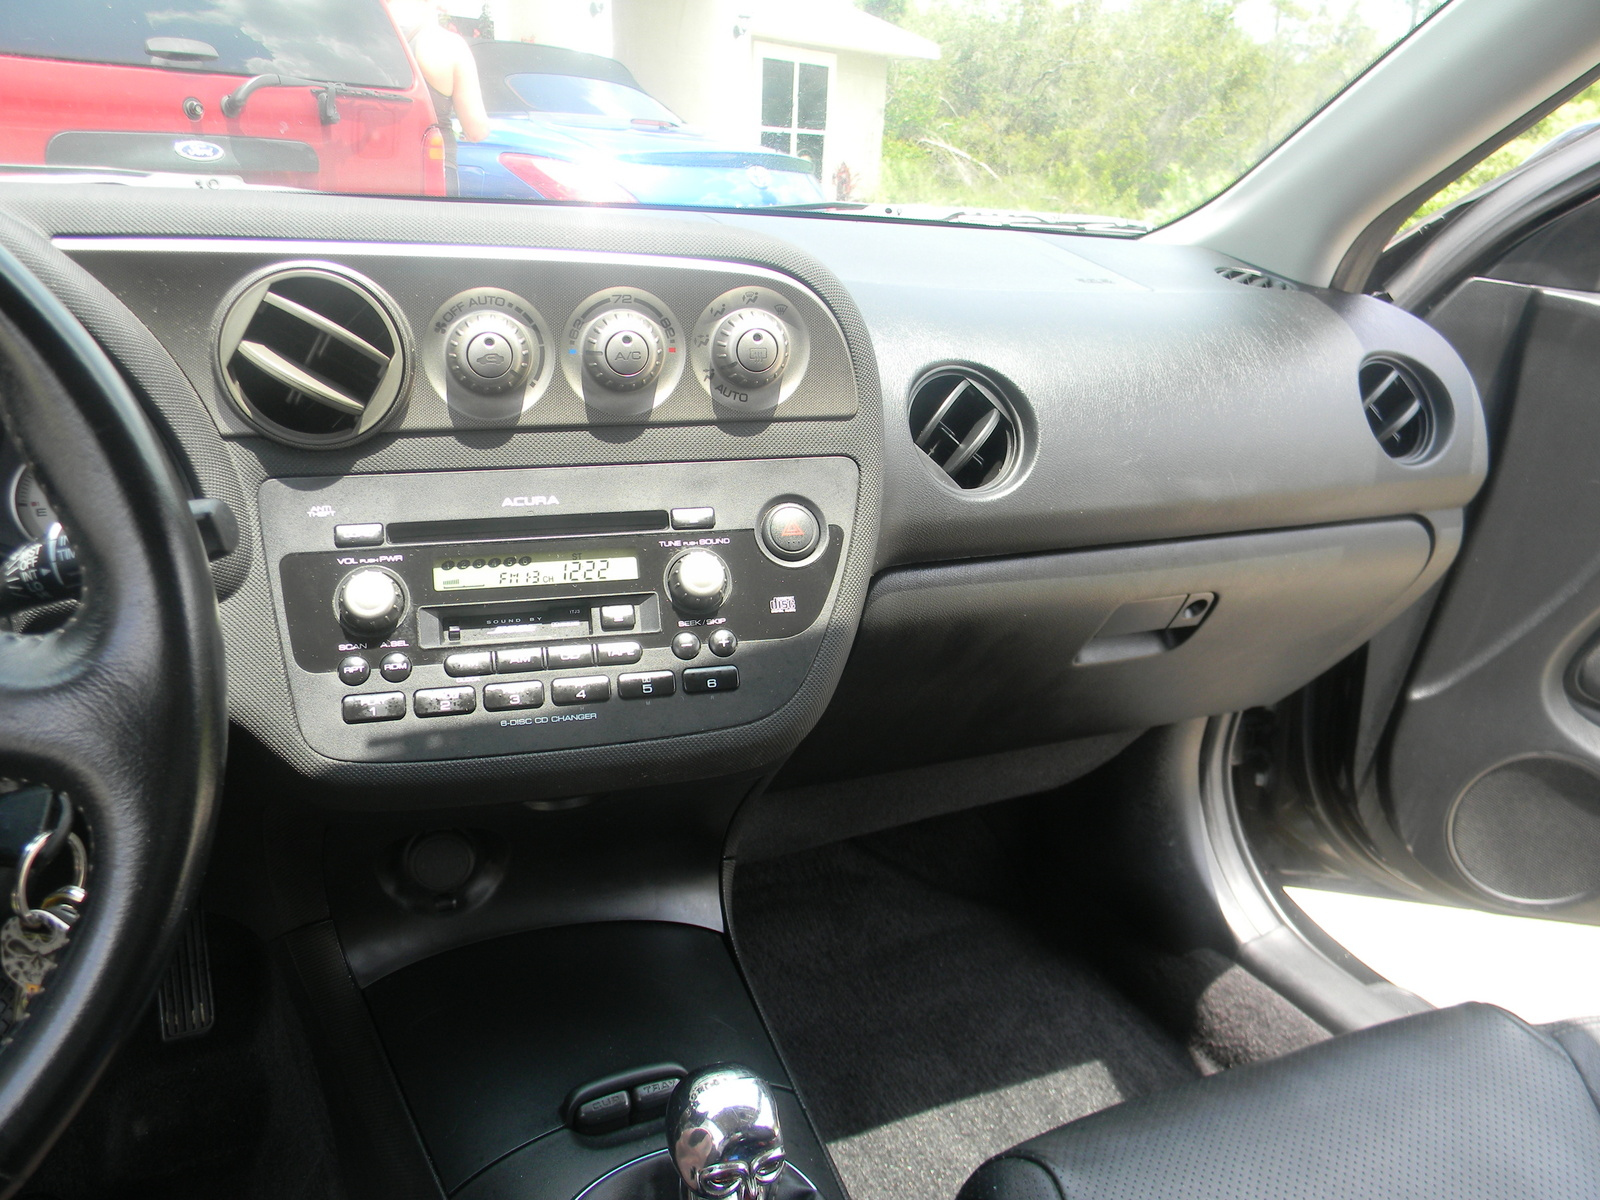 2006 Acura RSX - Interior Pictures - 2006 Acura RSX Type-S picture ...